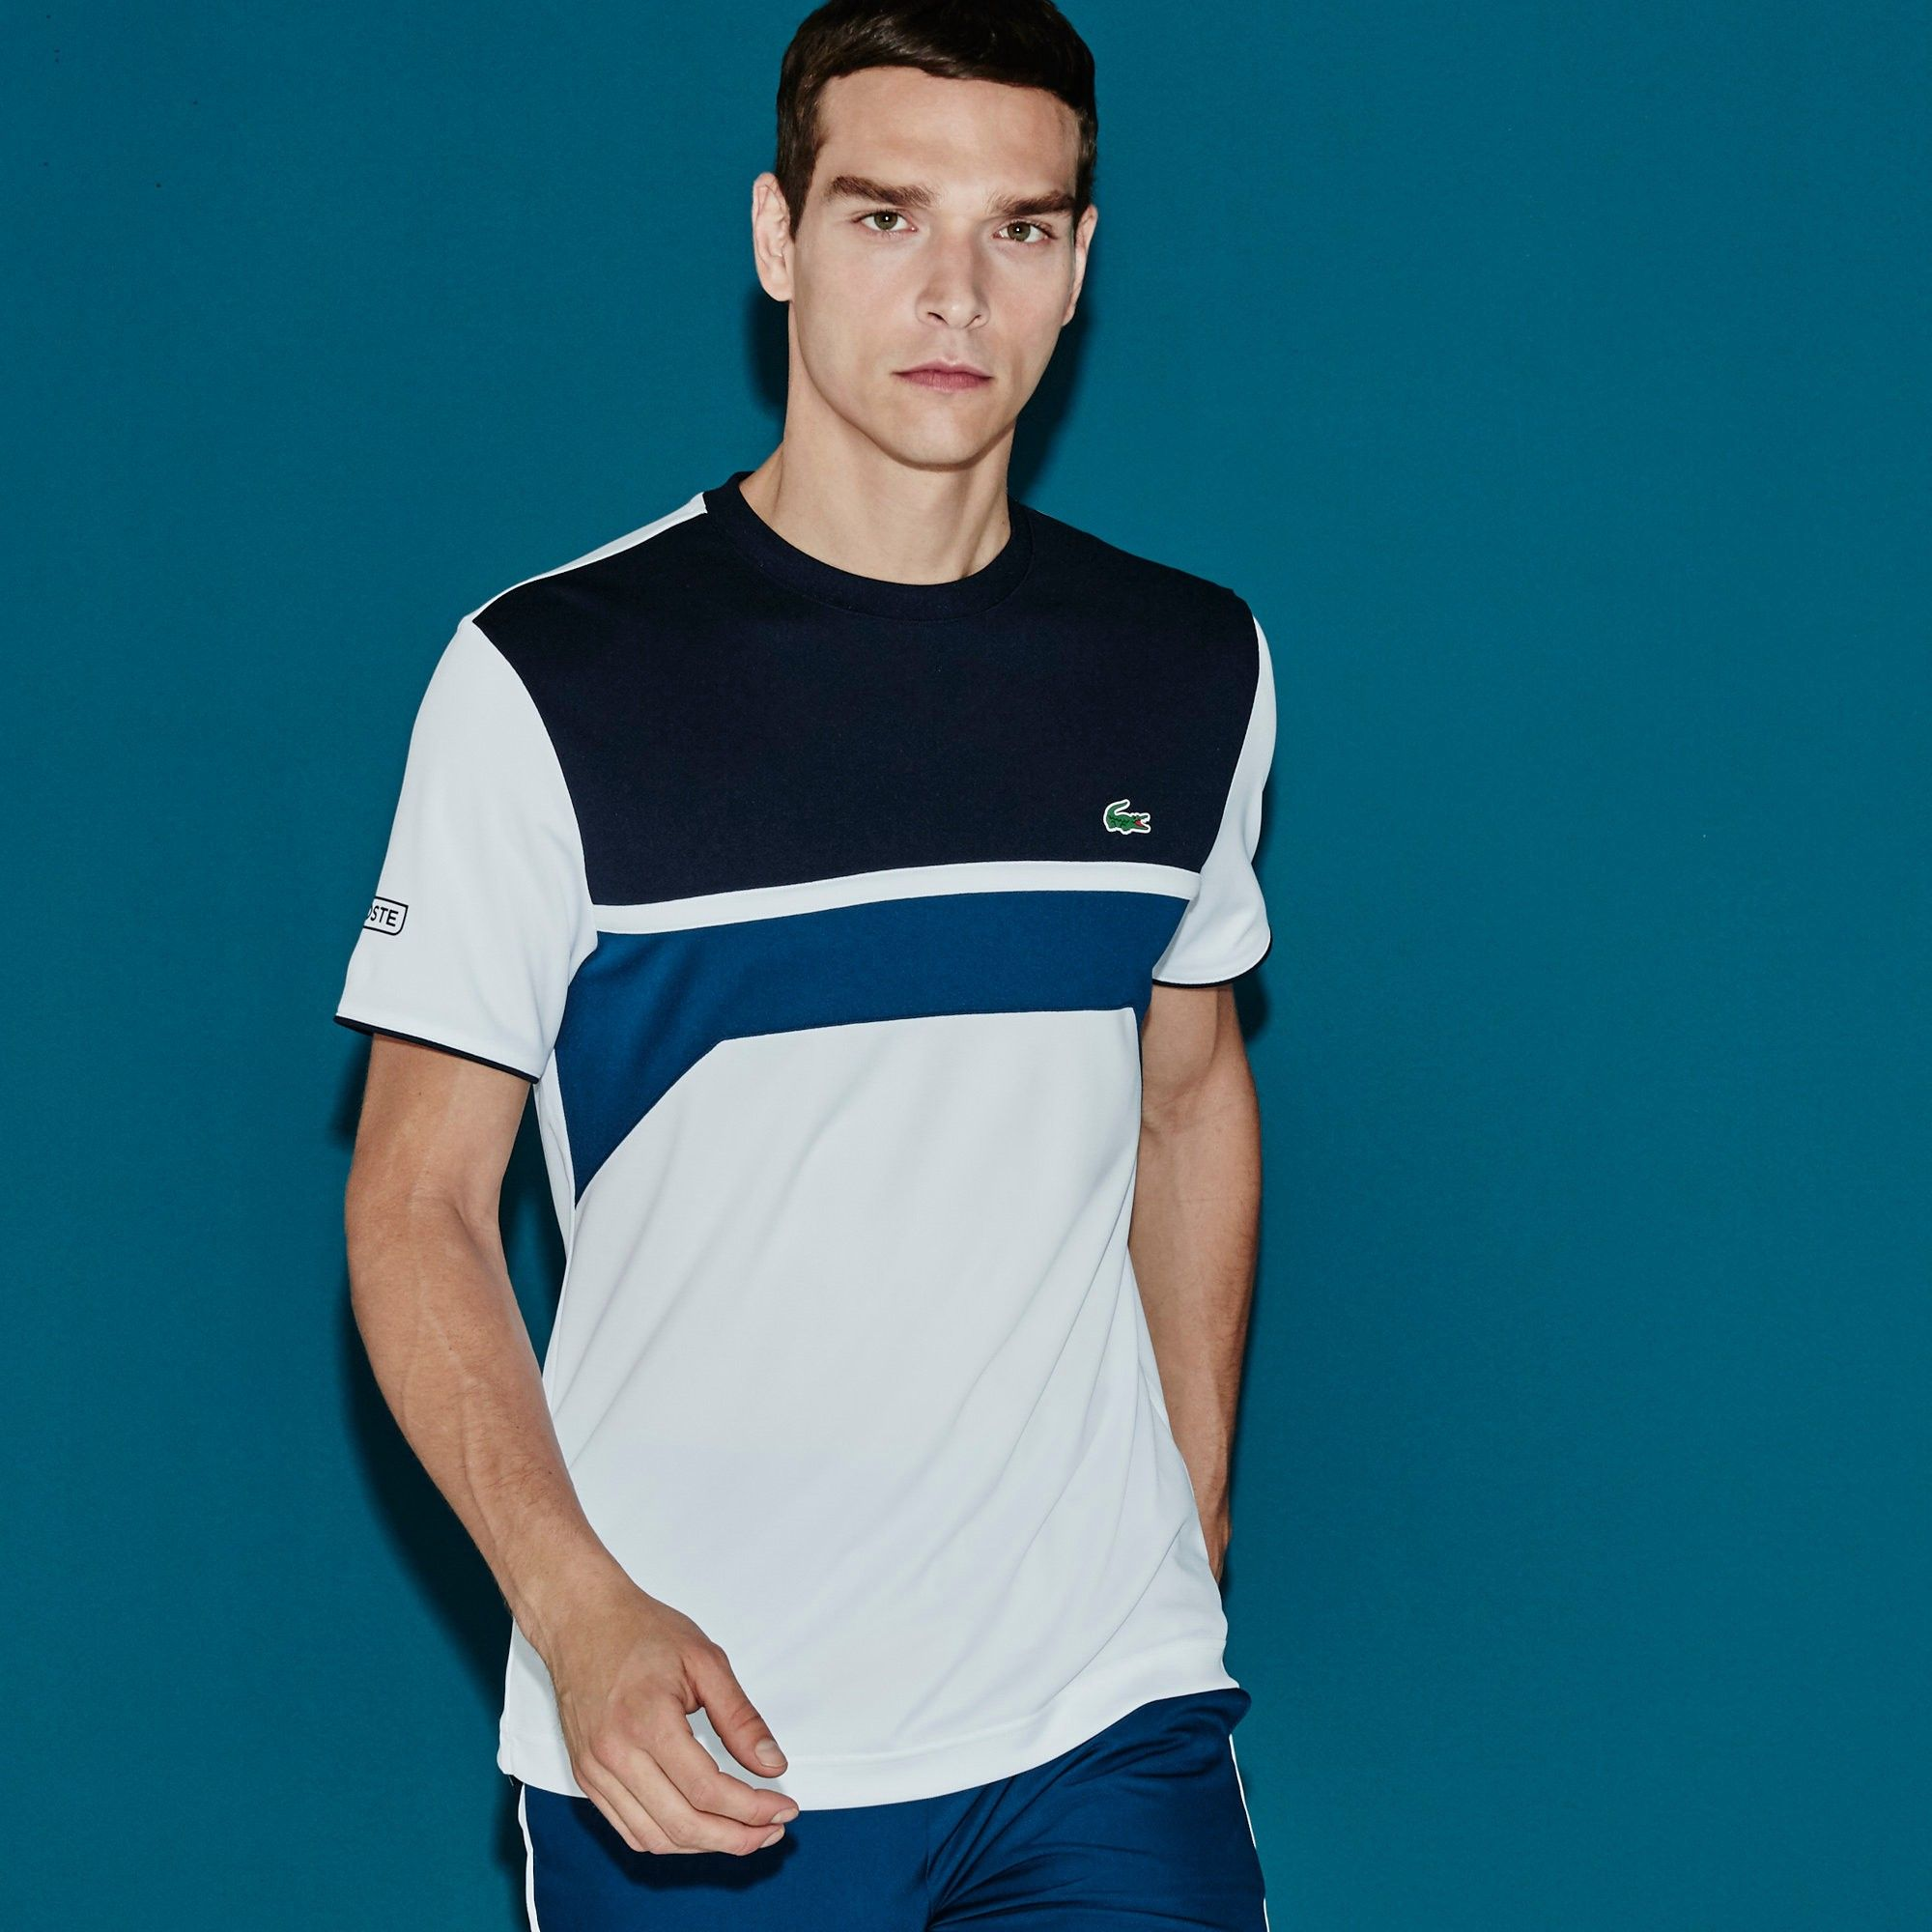 Lacoste Men S Sport Ultra Dry Chest Stripe Tennis T Shirt White Navy Blue Modesens Mens Casual Outfits Summer Lacoste Men Casual Wear For Men